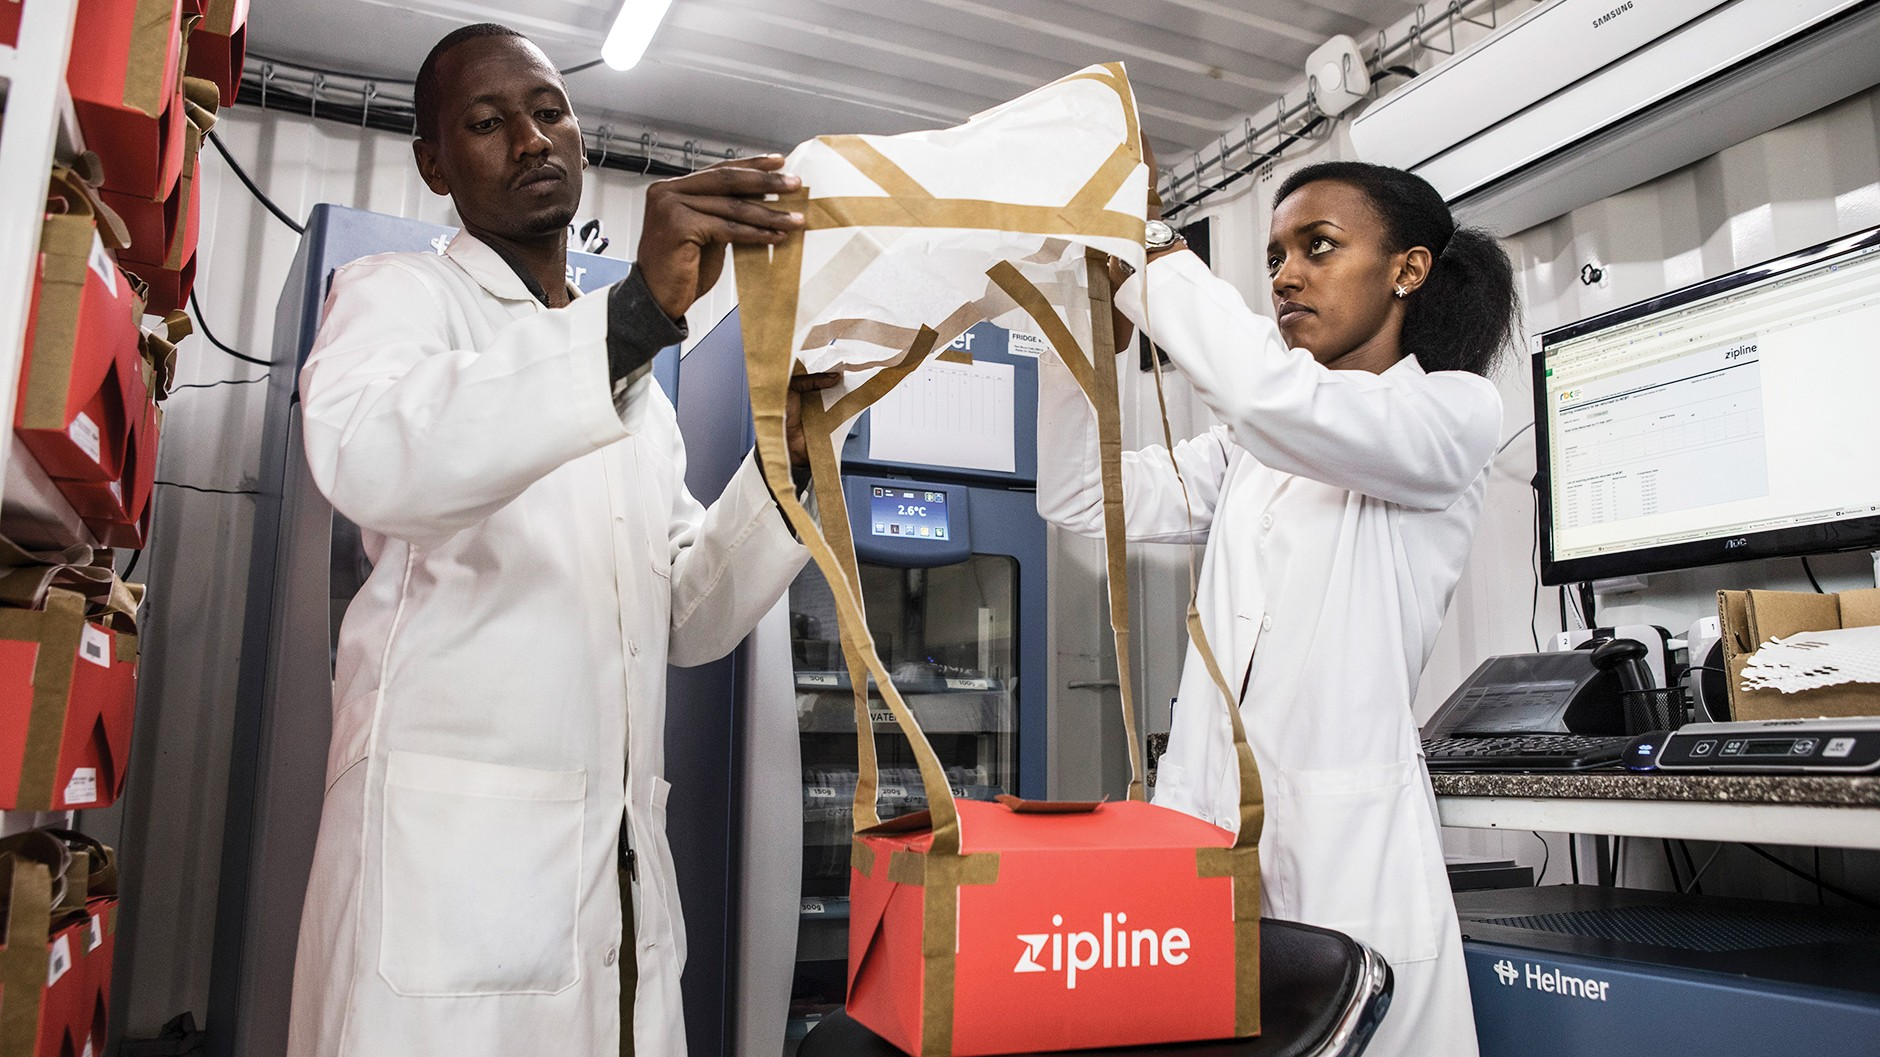 Zipline's Ambitious Medical Drone Delivery in Africa - MIT